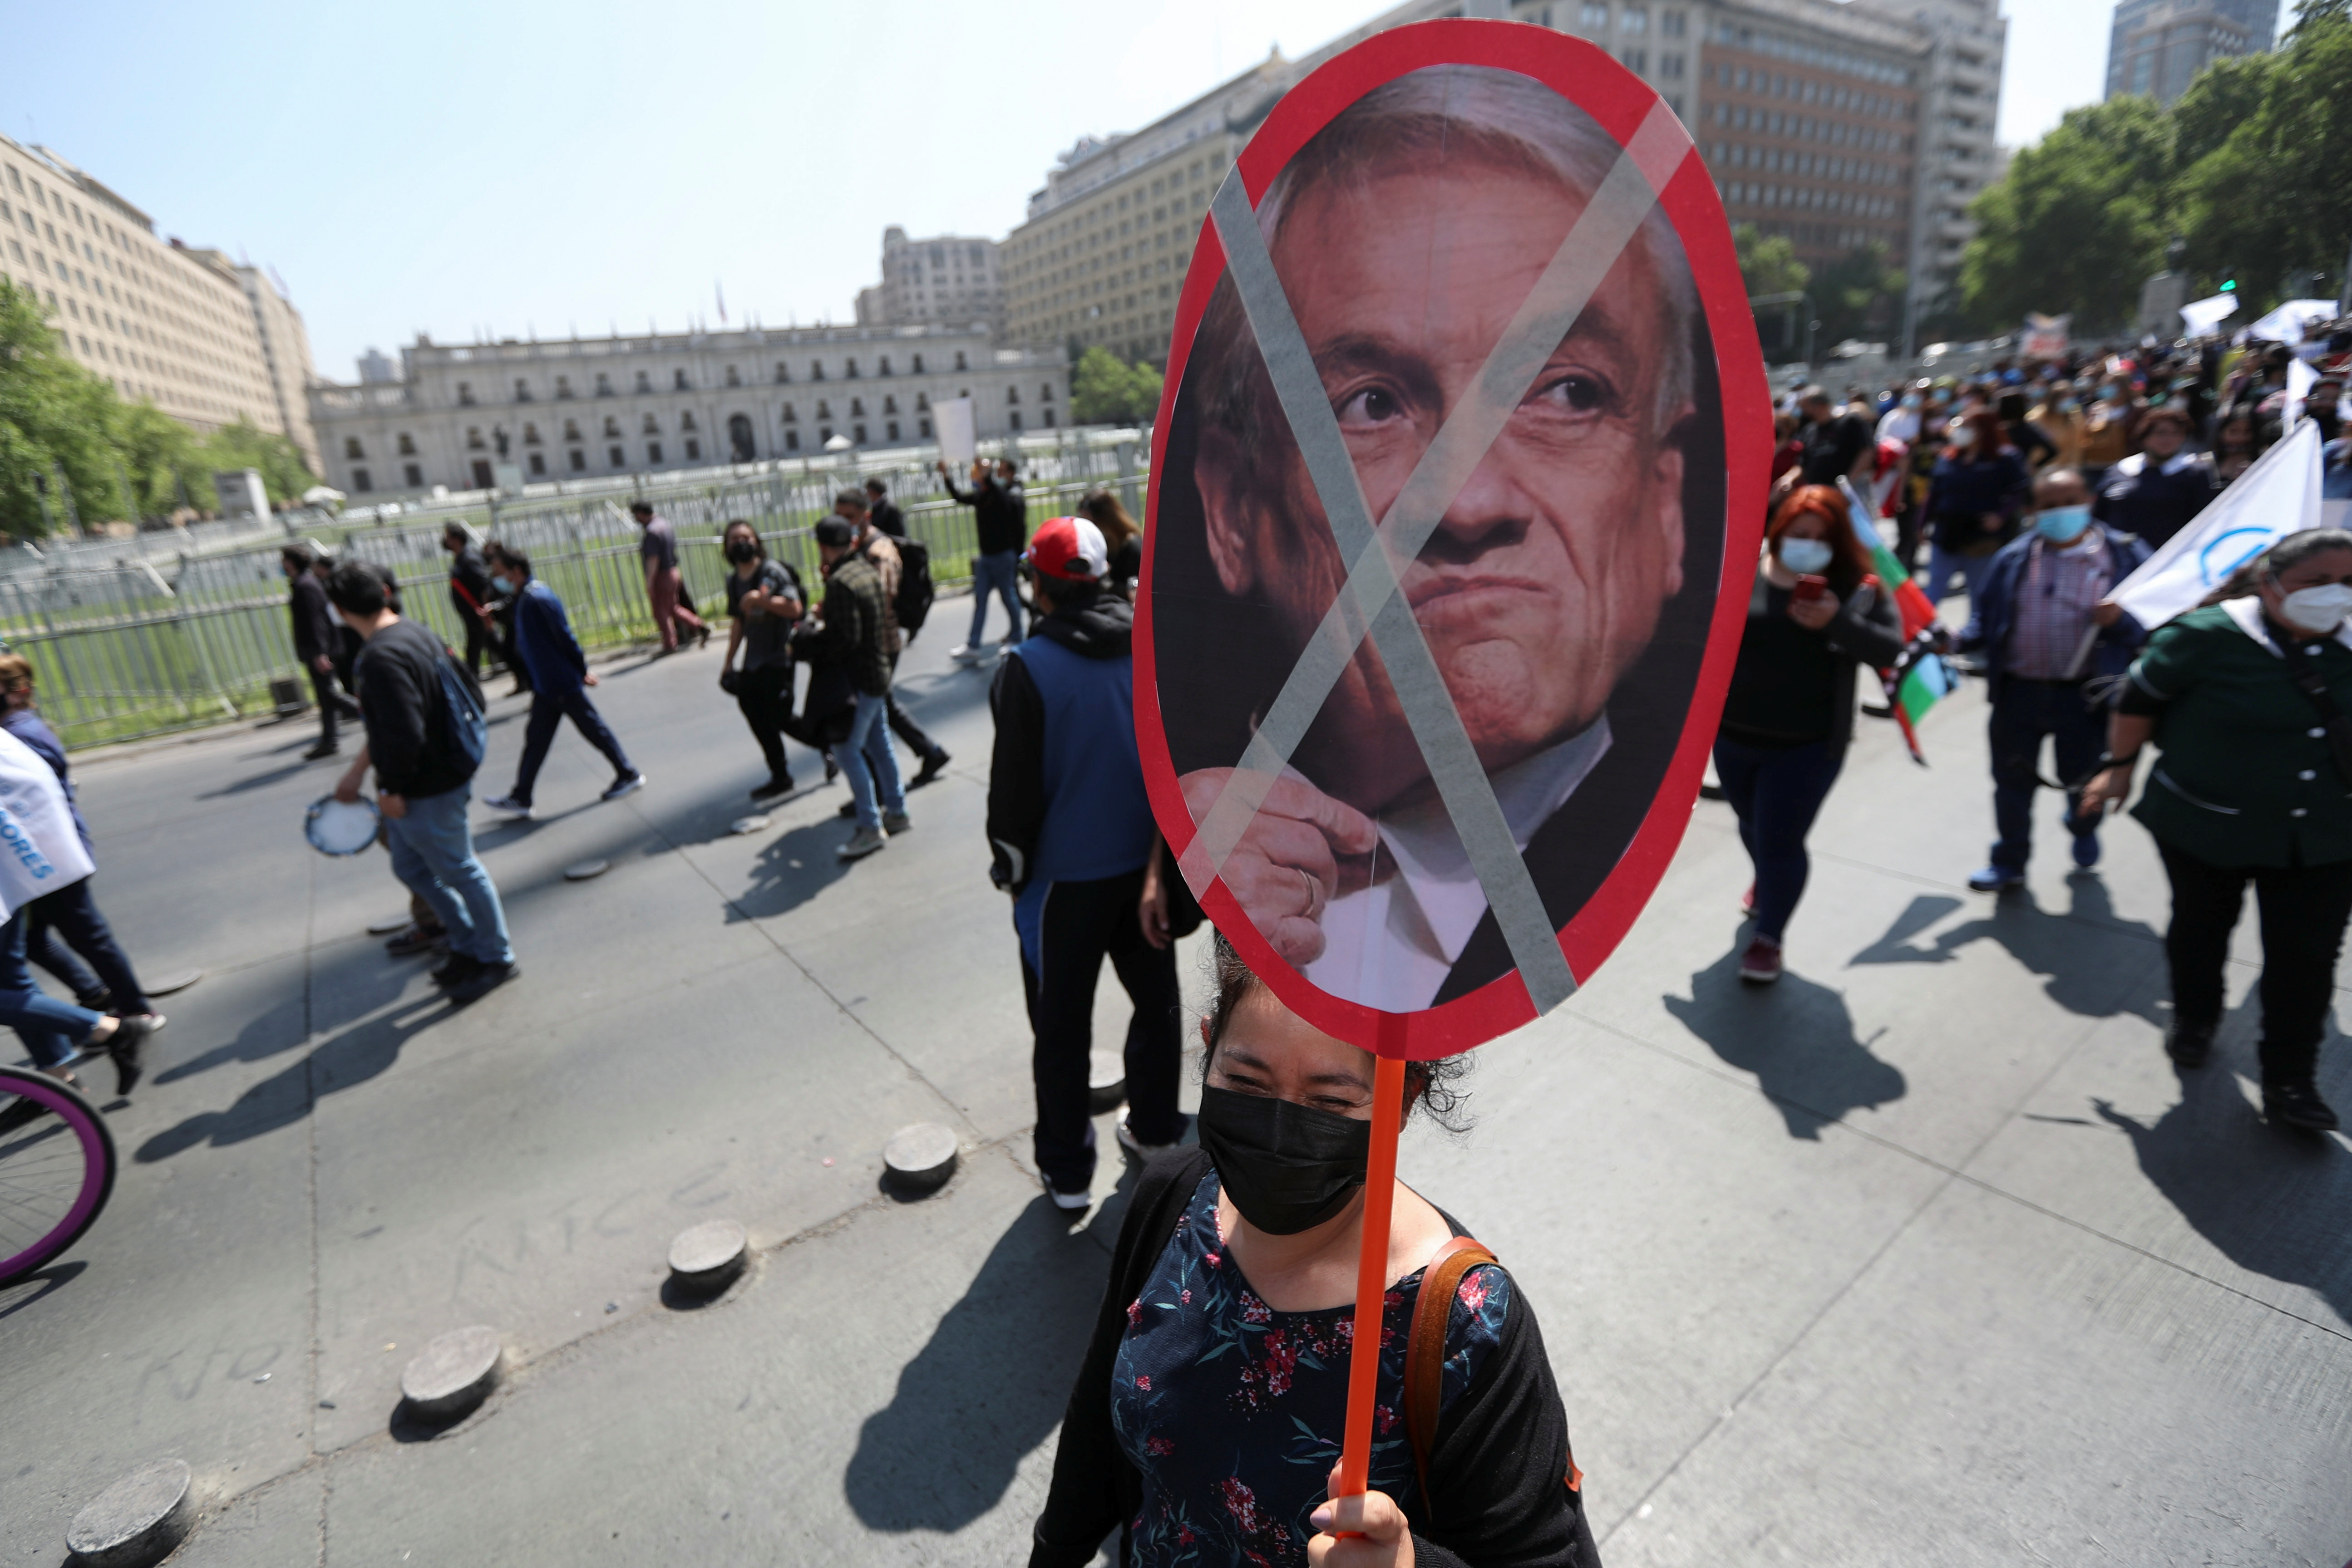 A demonstrator holds up a banner with the image of Chile's President Sebastian Pinera in front of the government house during a rally calling for the cancellation of a presidential veto of a bill that would improve the working conditions of Chilean teachers, and to request Pinera's resignation, in Santiago, Chile, October 13, 2021. REUTERS/Ivan Alvarado